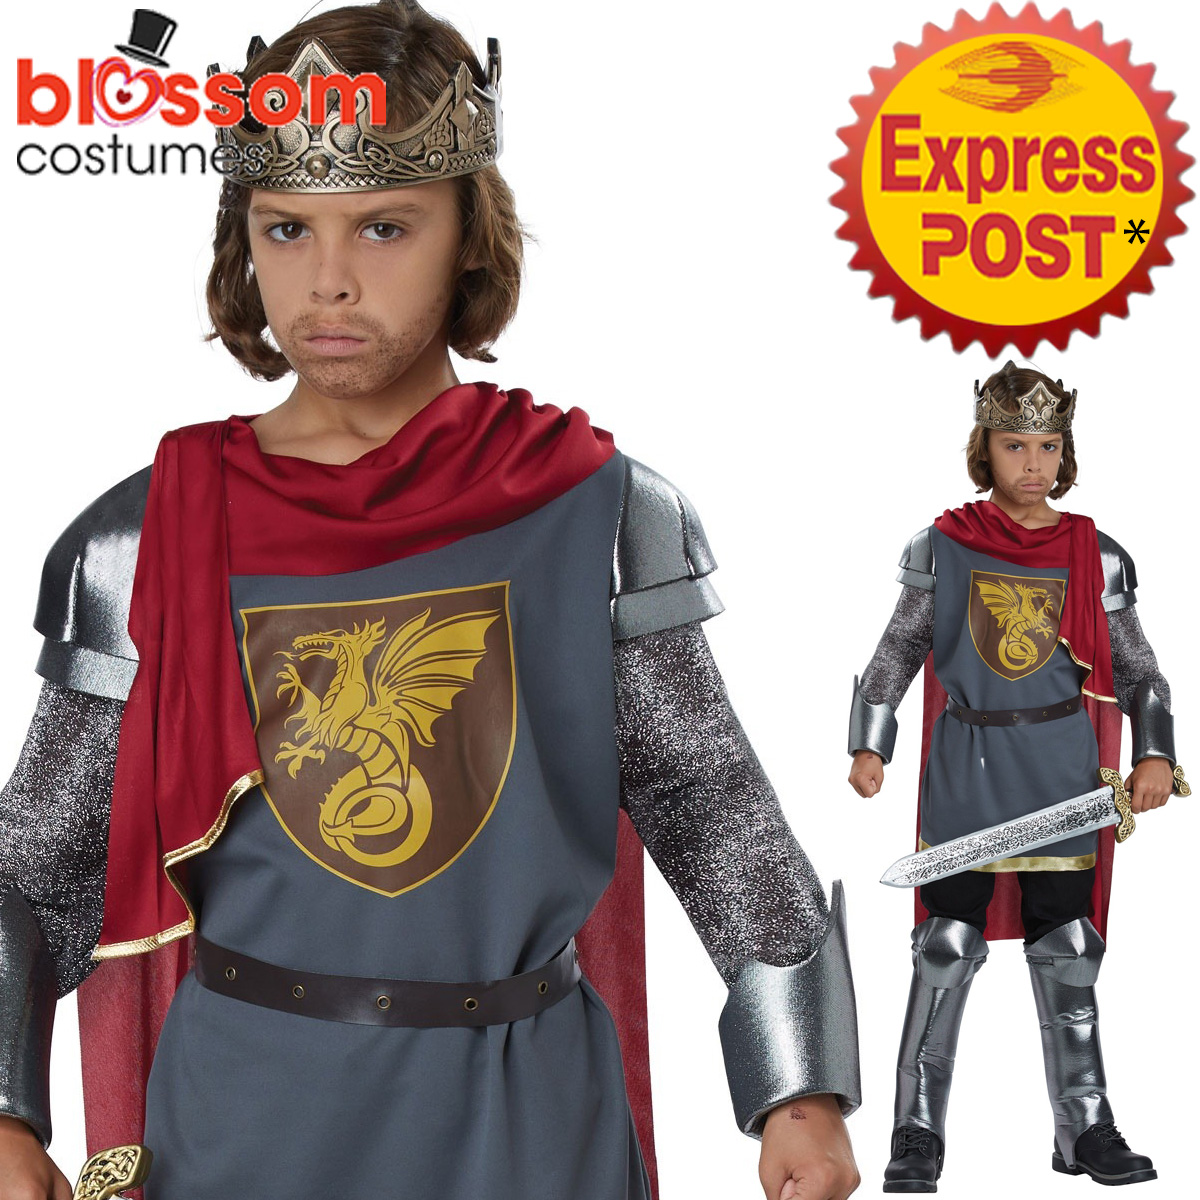 Image is loading CK1087-King-Arthur-Boys-Kids-Warrior-Costume-Medieval-  sc 1 st  eBay & CK1087 King Arthur Boys Kids Warrior Costume Medieval Knight ...